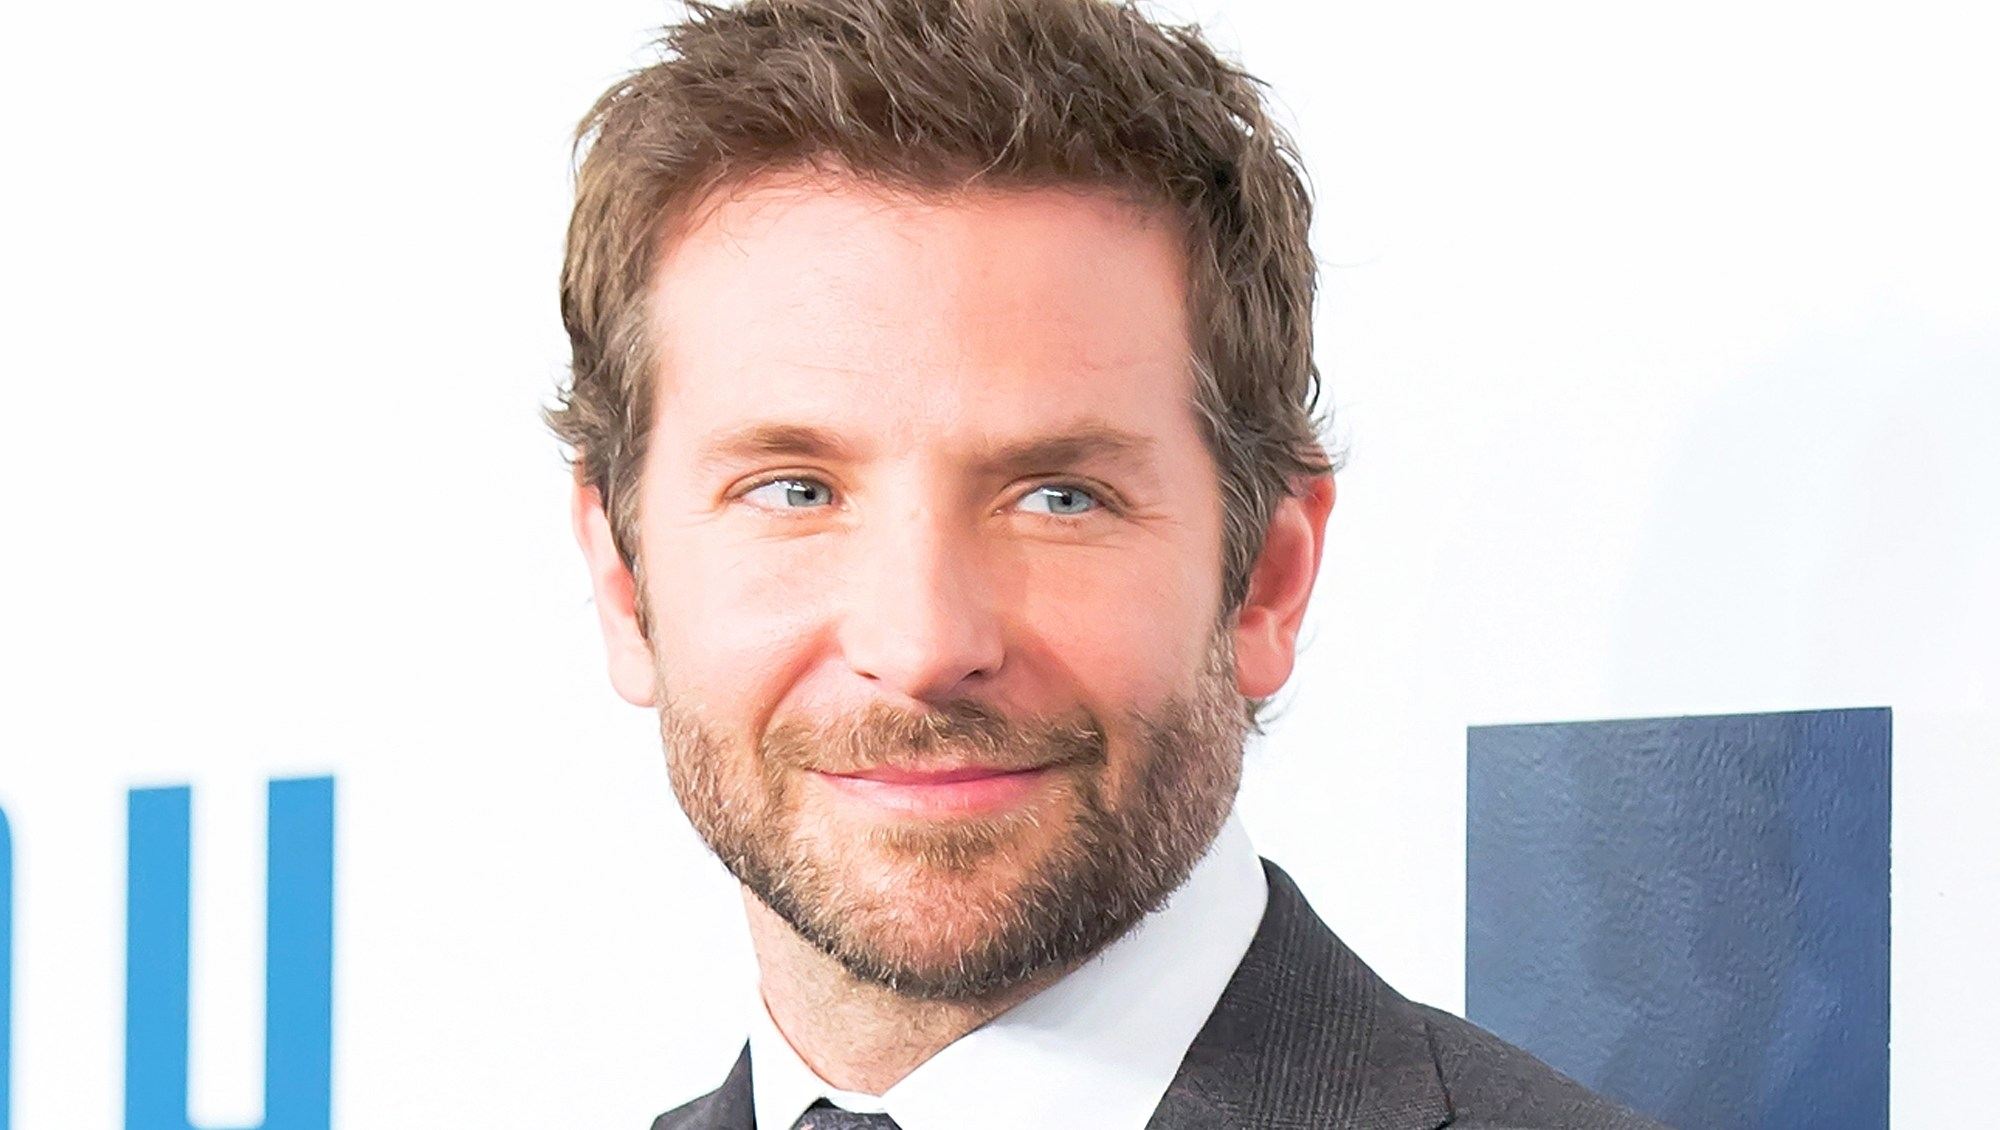 Bradley Cooper attends the 'Joy' New York premiere at Ziegfeld Theater in New York City.